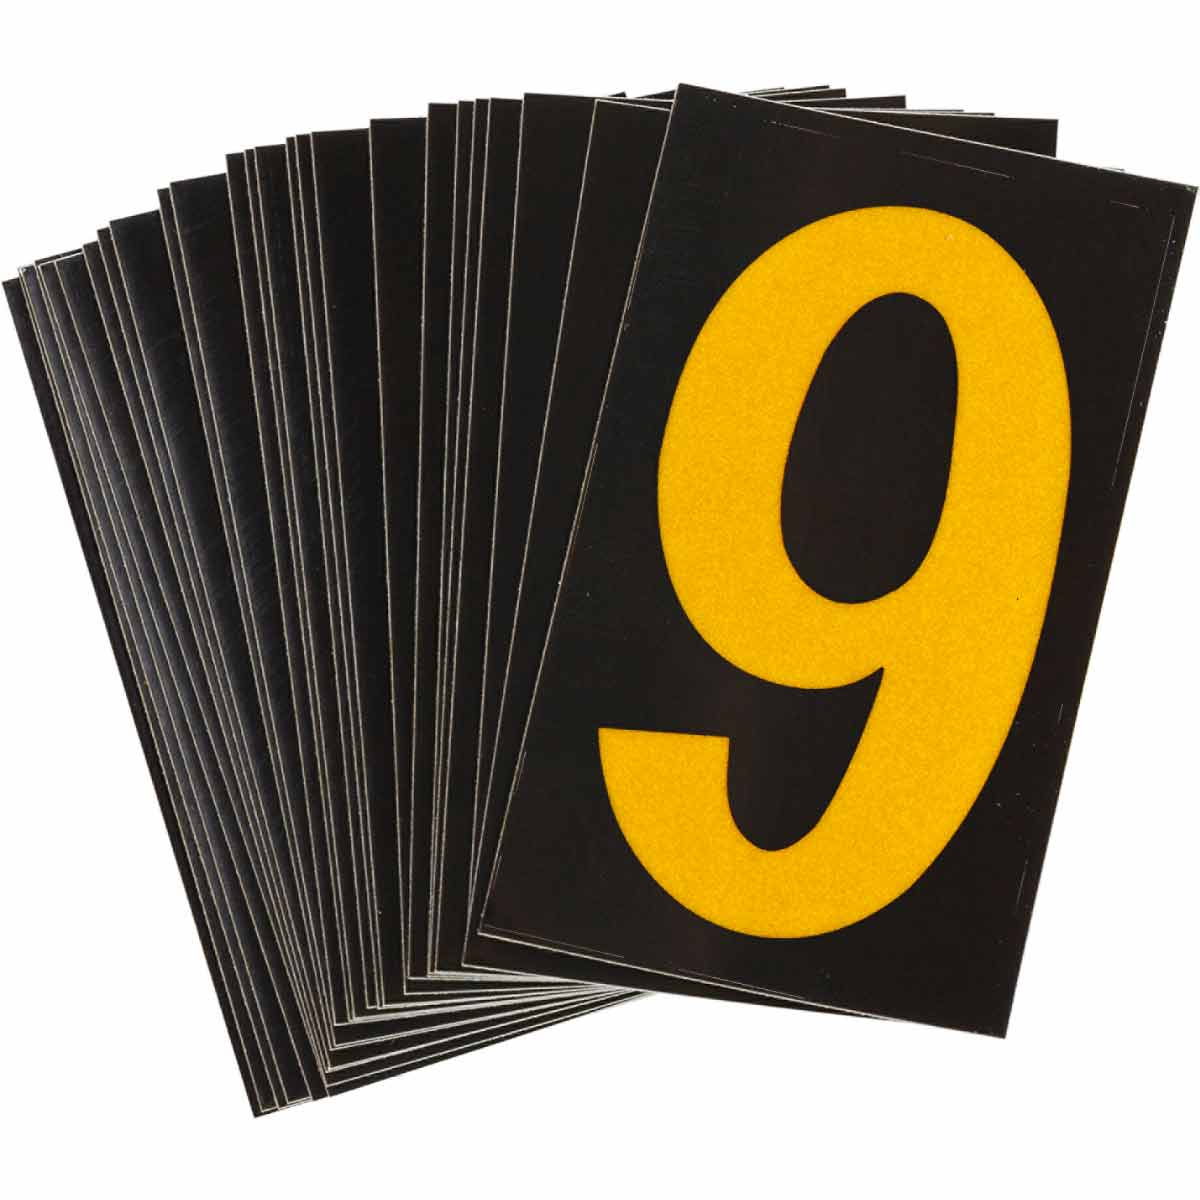 """BRADY 5000-9 BRADYLITE REFLECTIVENUMBERS & LETTERS GROUP 1 1-3/4"""" X2-7/8"""" YELLOW ON BLACK 25 PER PACK"""